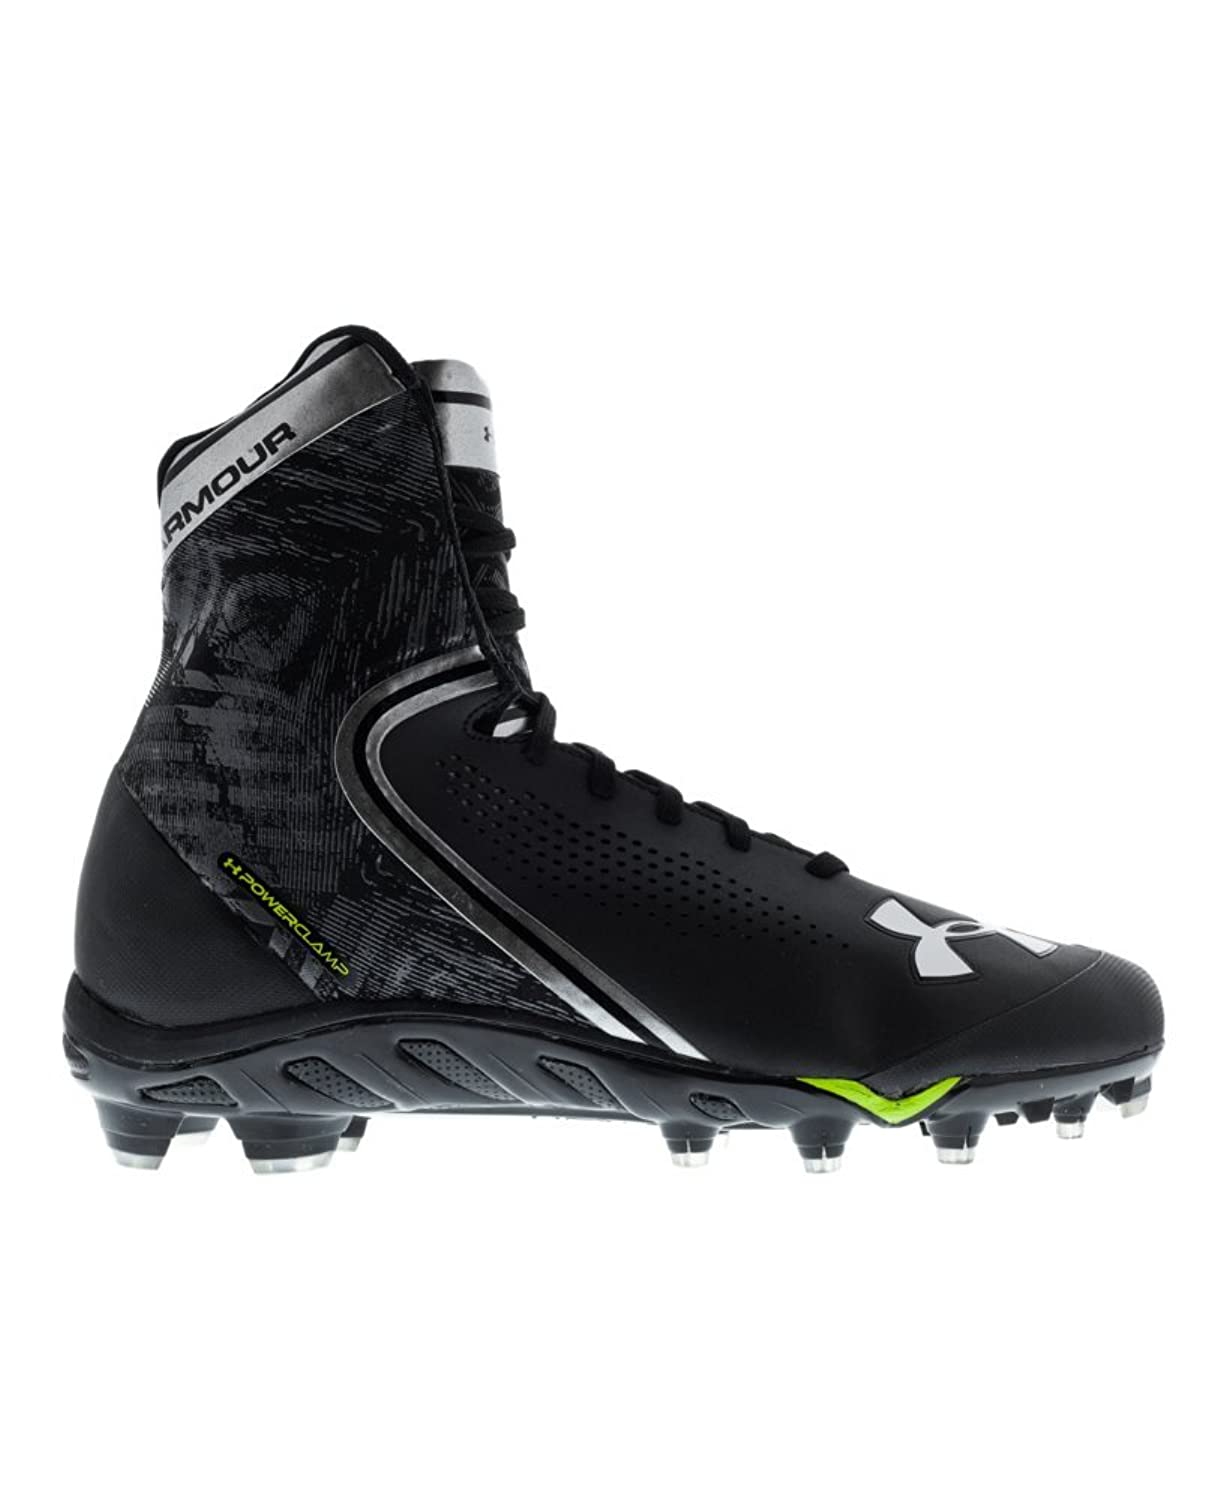 167ea67bec2 Cheap under armour cam cleats Buy Online  OFF58% Discounted